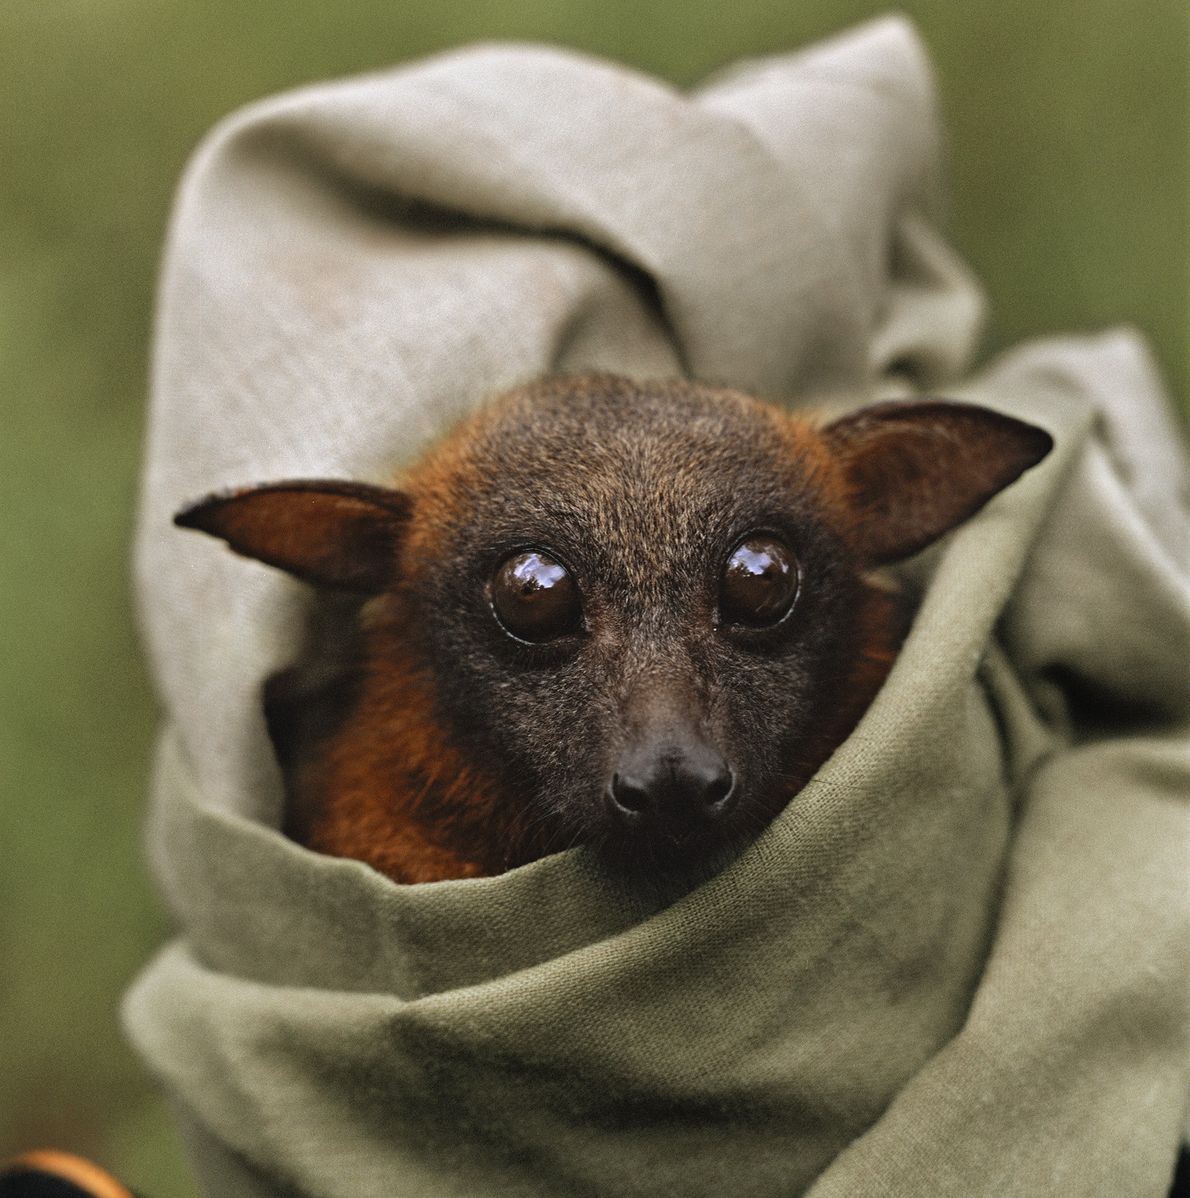 The little red flying fox is a type of bat native to Australia. Here one is ...